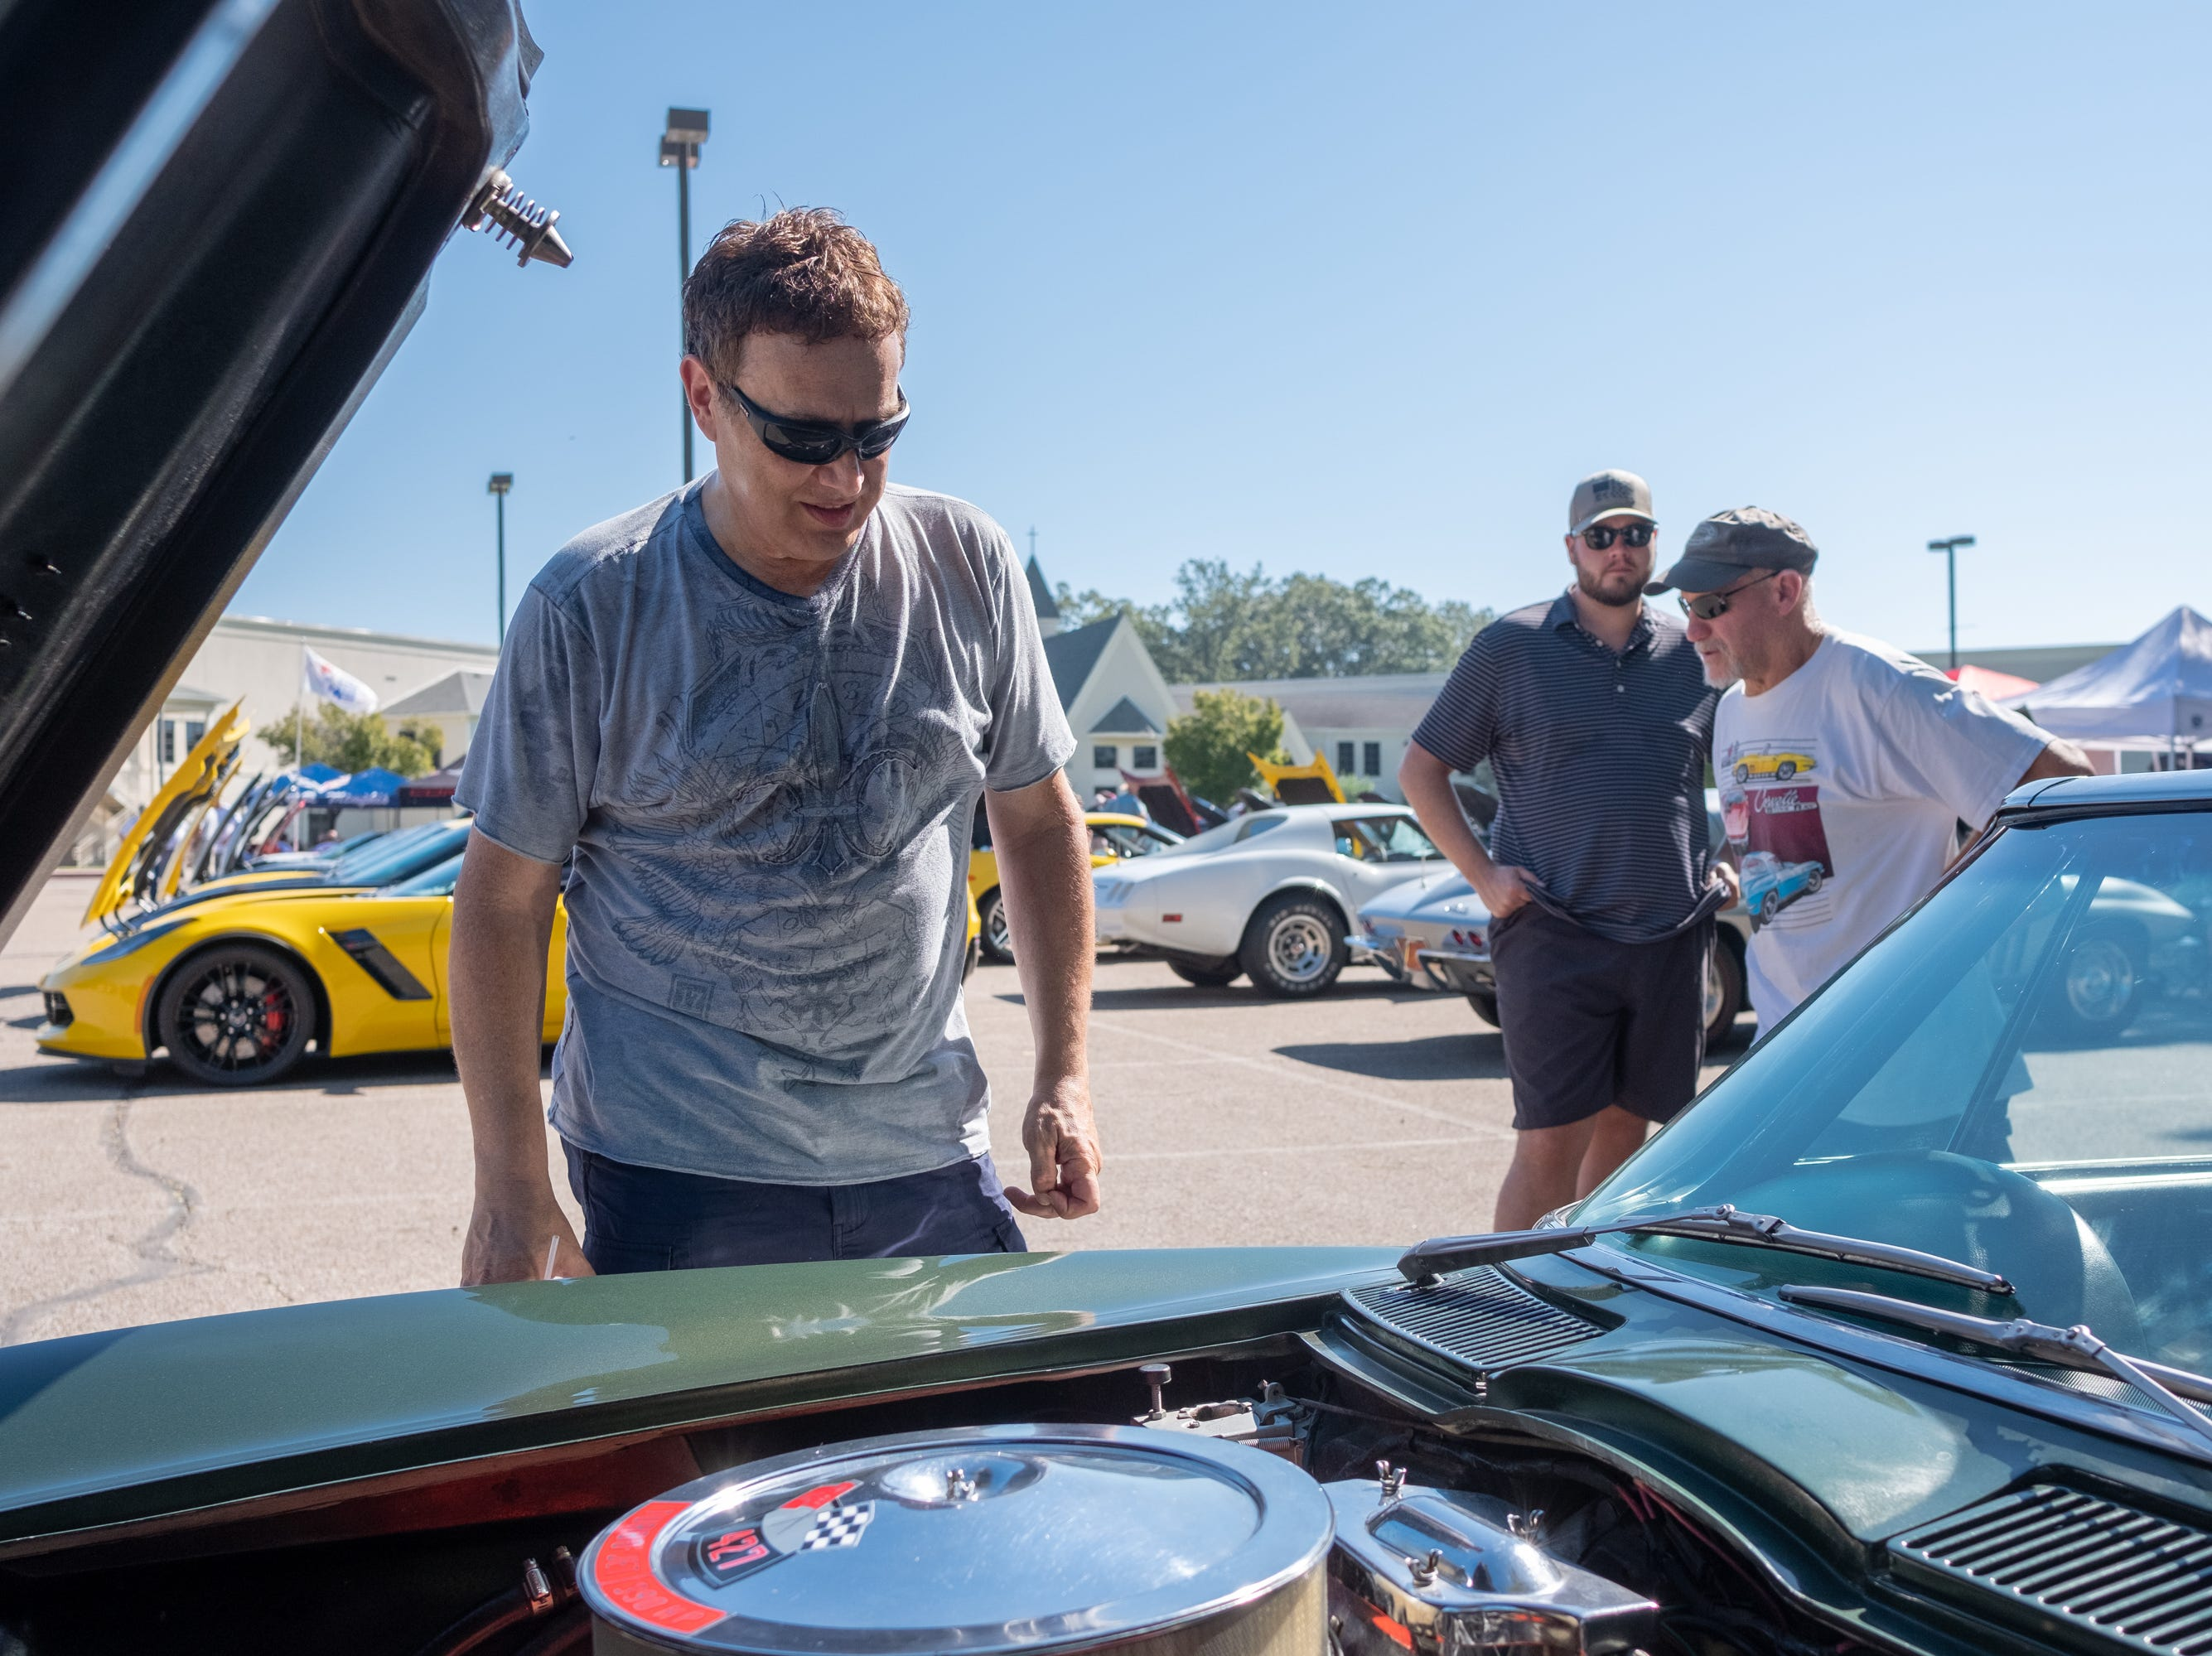 Jim Jeanis inspects the enging of a 1967 Corvette Stingray at the Collierville Classic Car Show on Sept. 15, 2018.